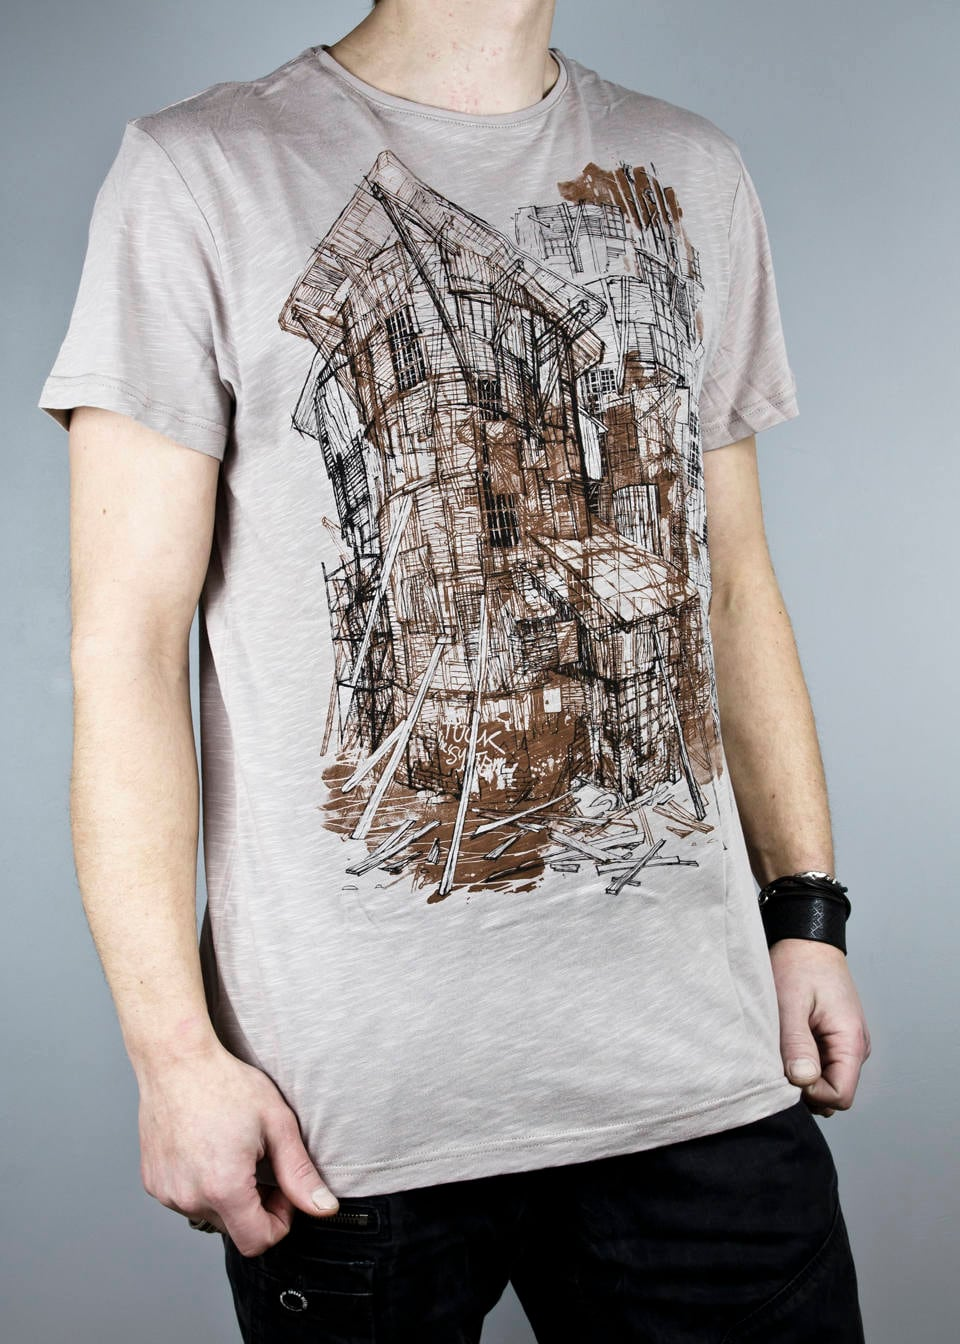 29d6f9e9d5e82 Architecture sketch on T shirt, Tee with houses, gray mens womens unisex  short sleeve top unique Latvian design art by cemme shirts handmade